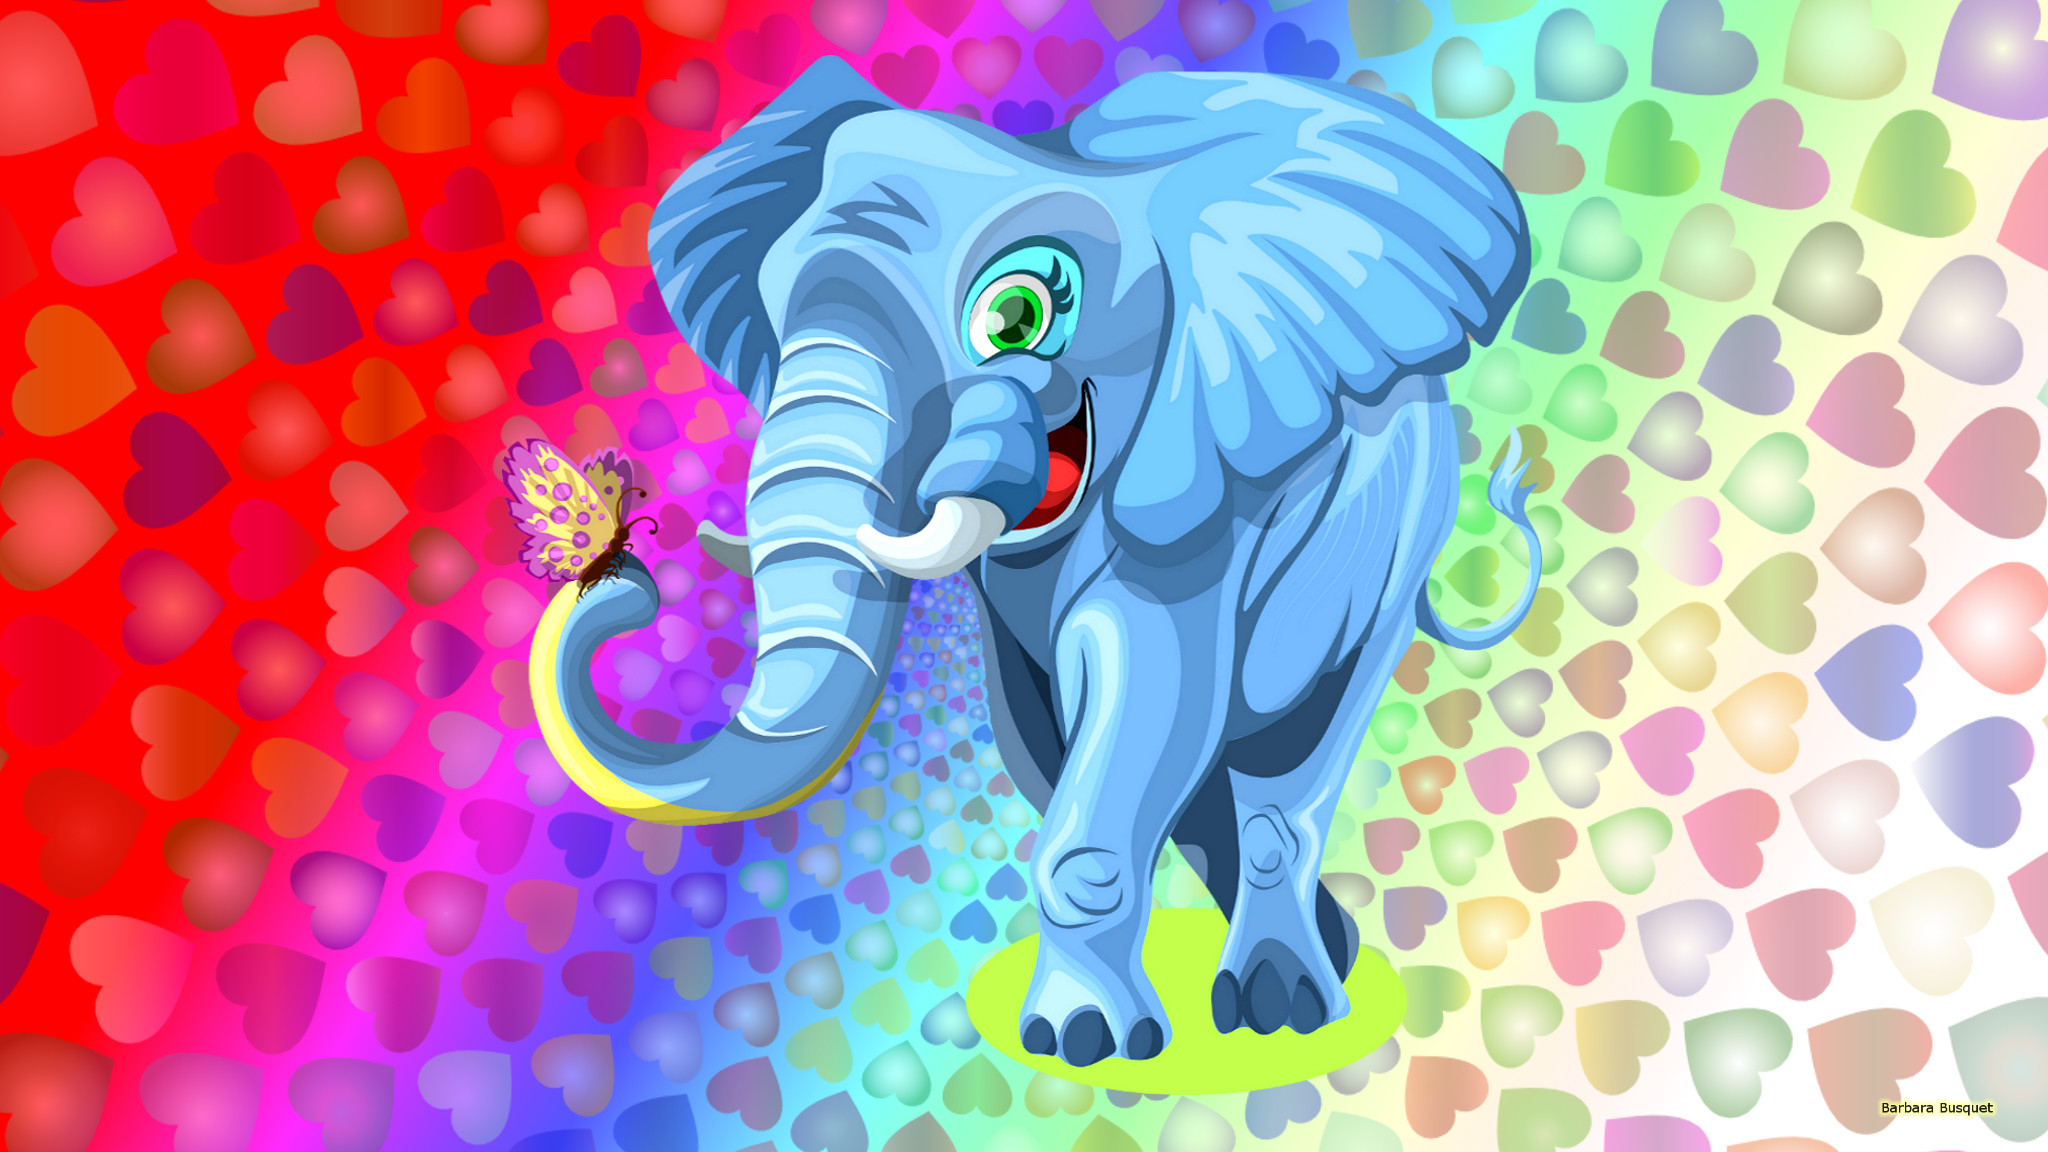 Full HDQ Cover Elephant Images, B.SCB Wallpapers